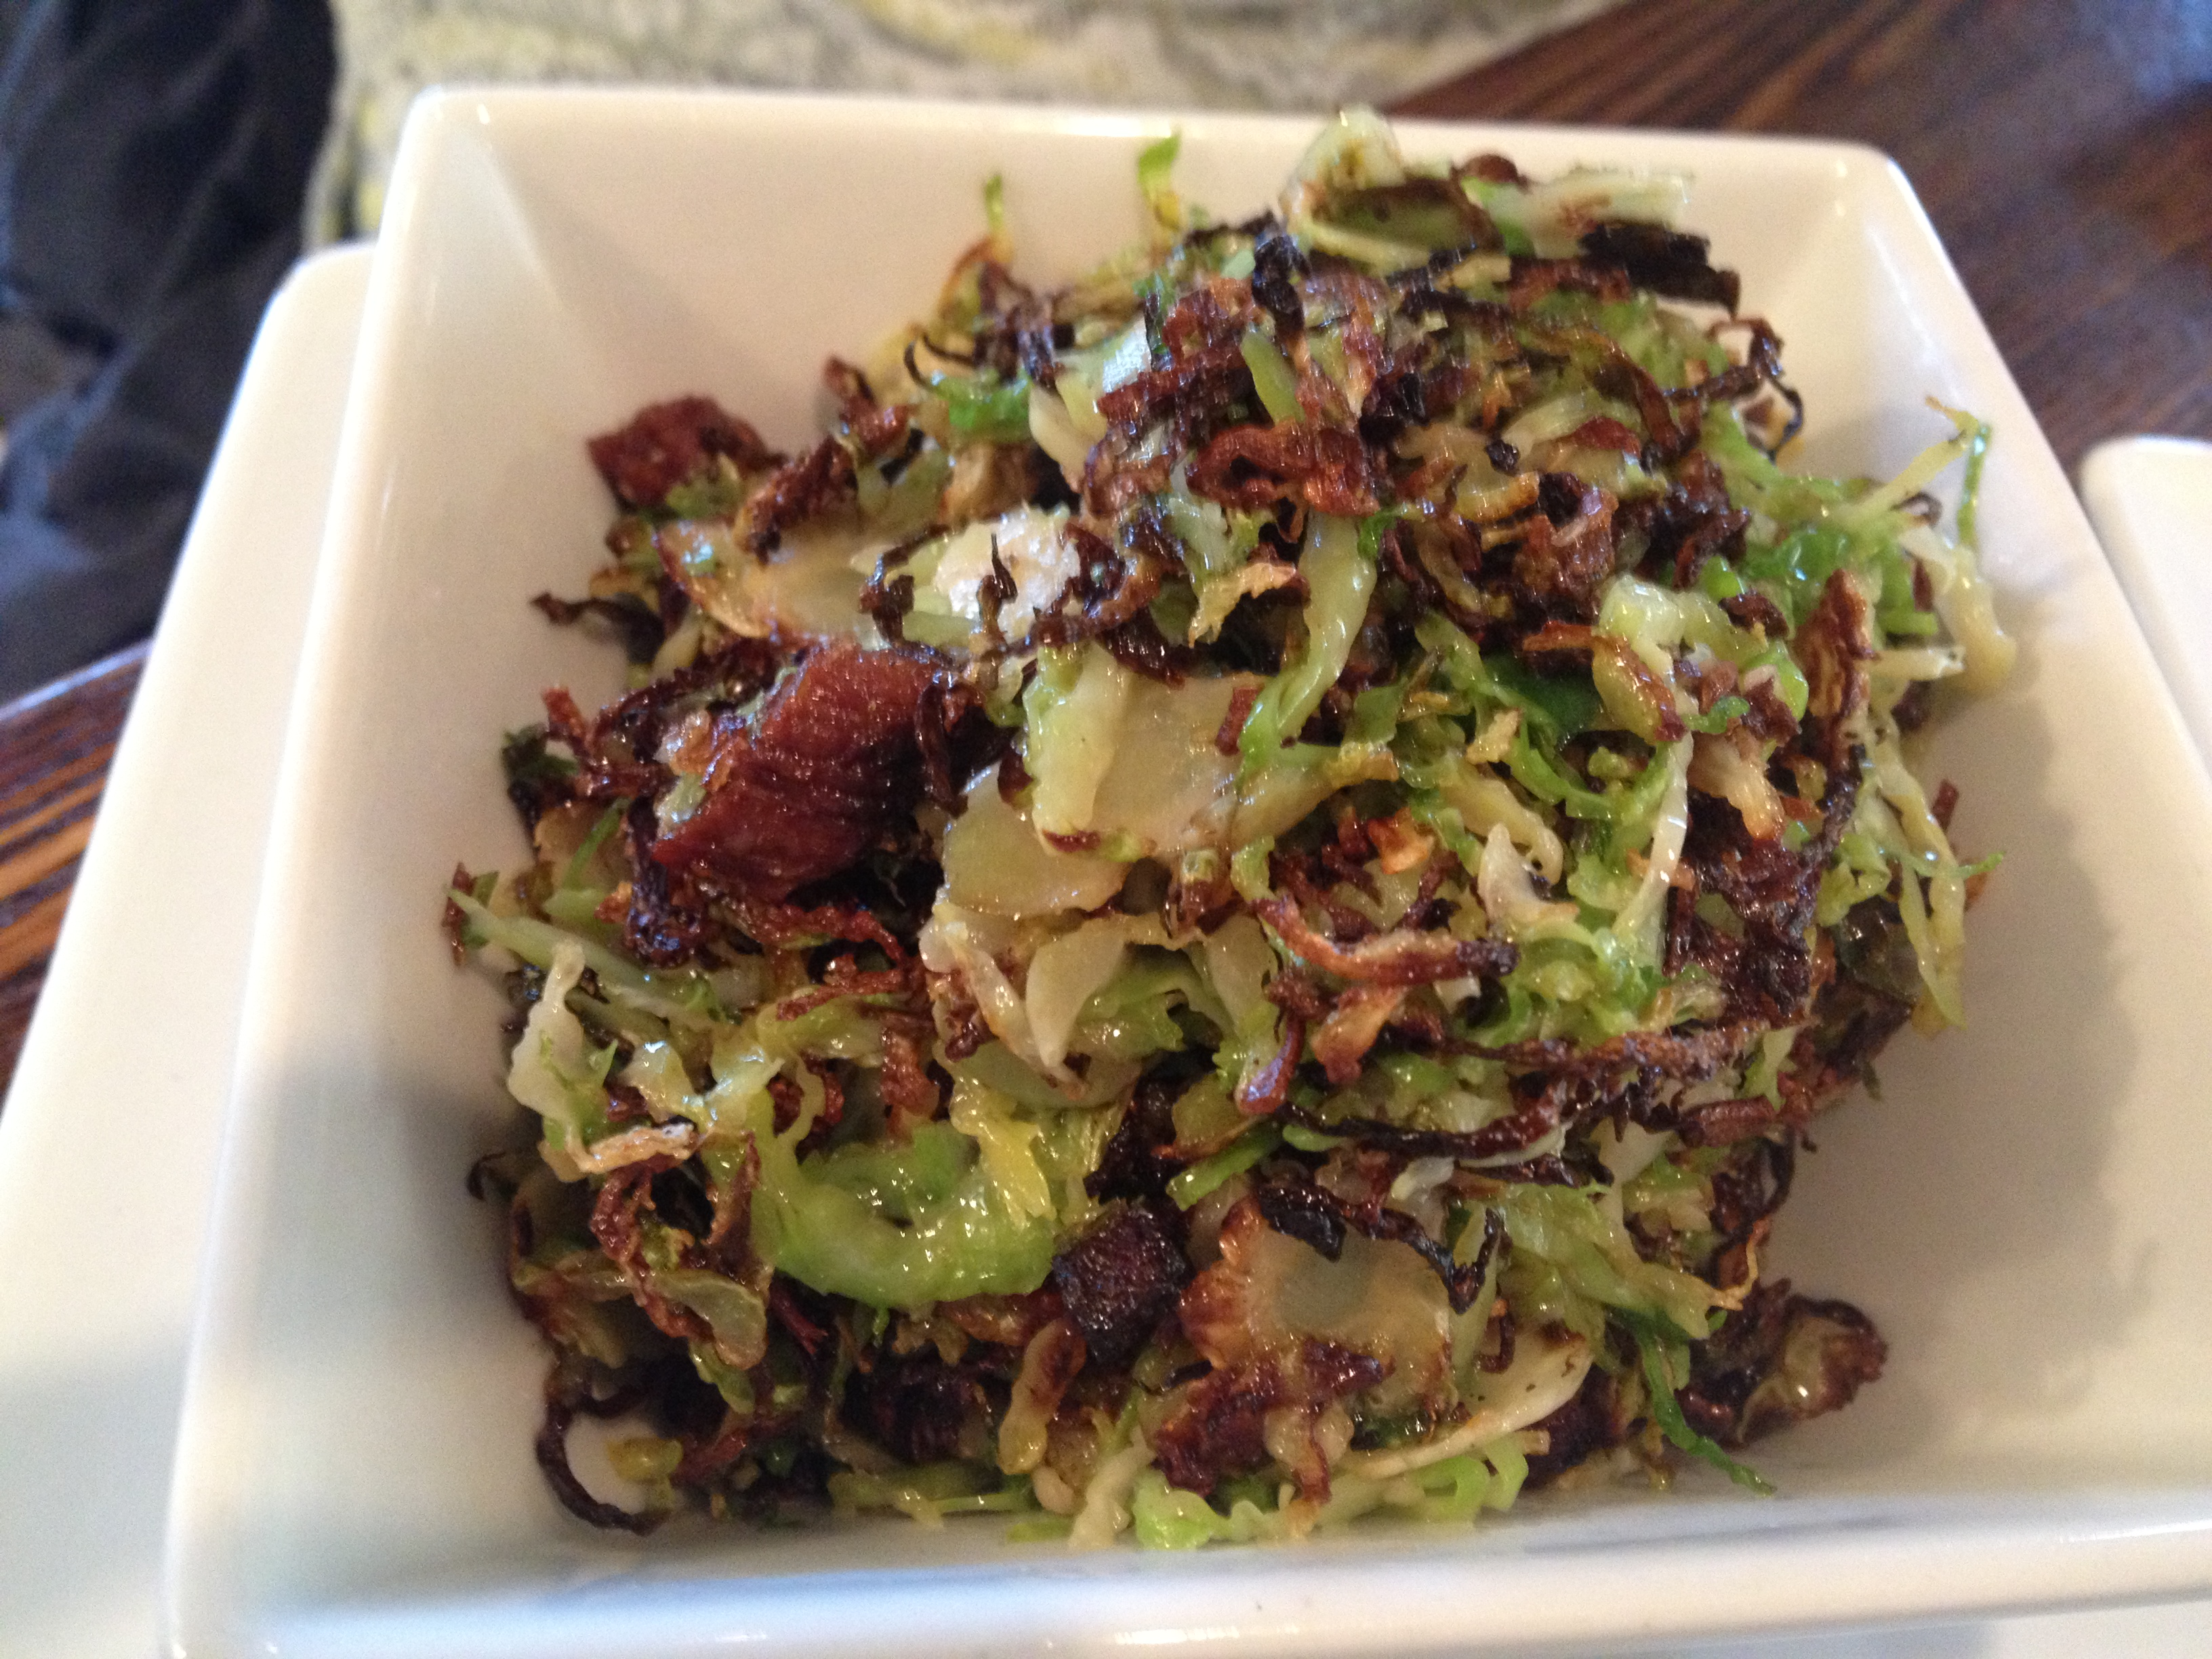 14 Global caramelized brussels sprouts